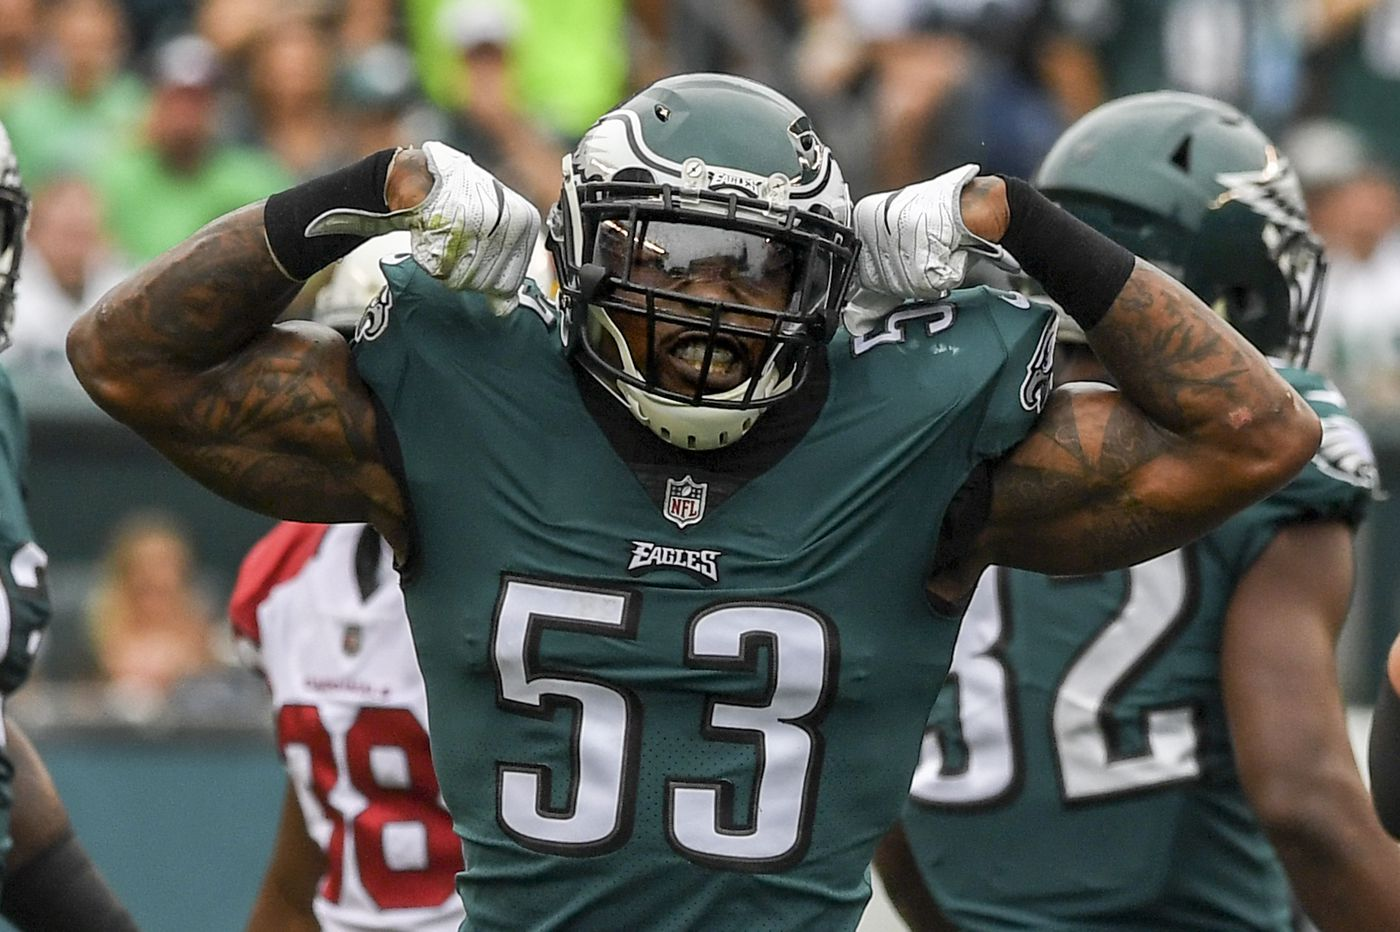 What is Eagles linebacker Nigel Bradham trying to improve in 2018? | Early Birds